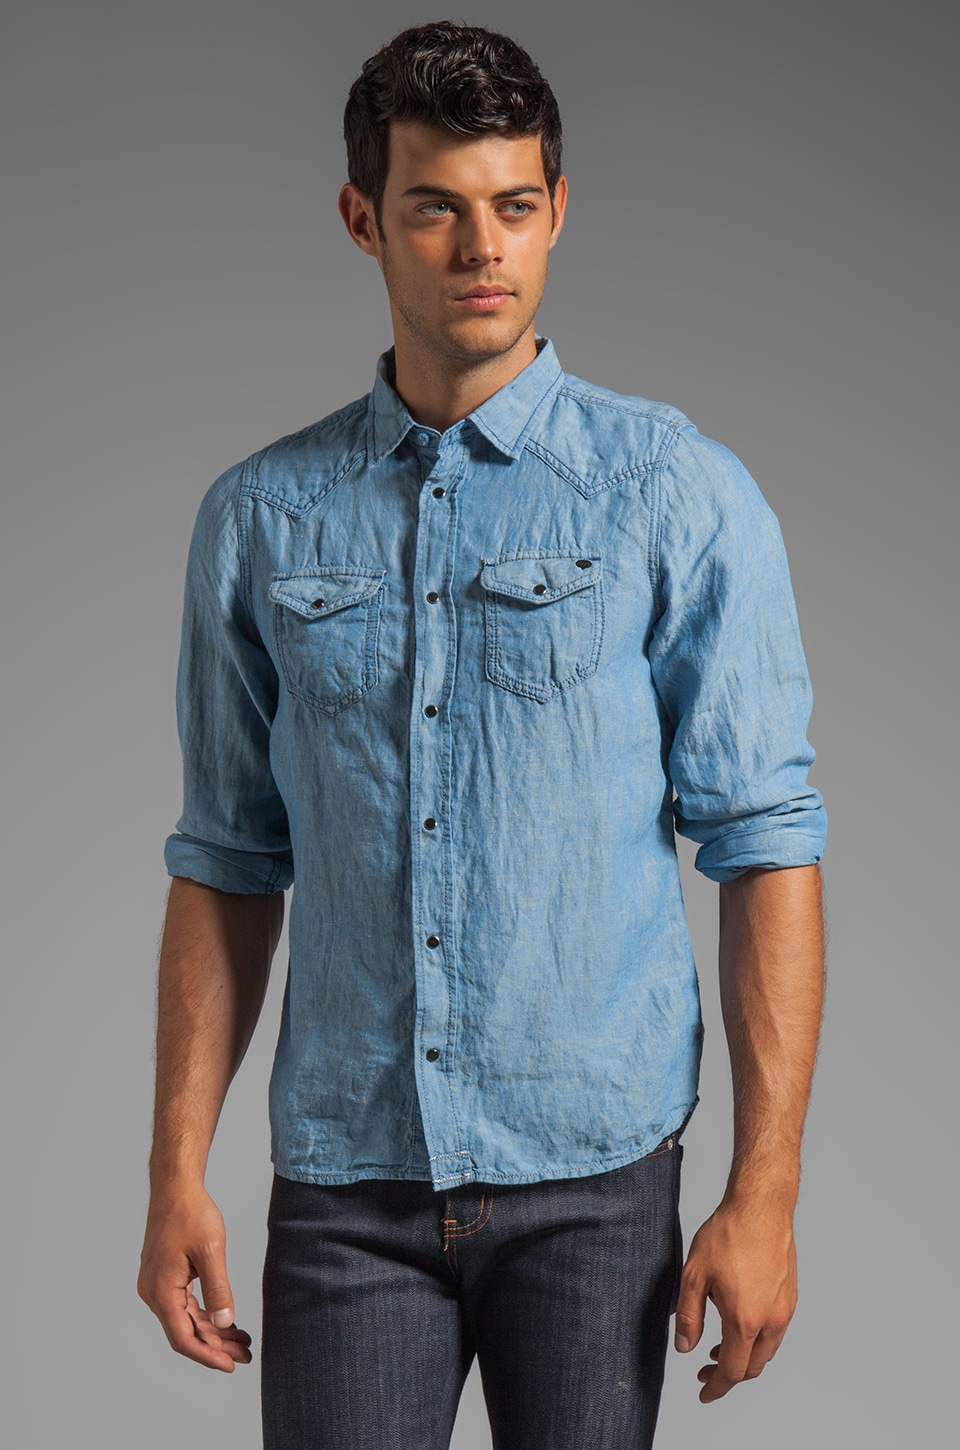 Diesel Sonora Chambray Shirt in Denim